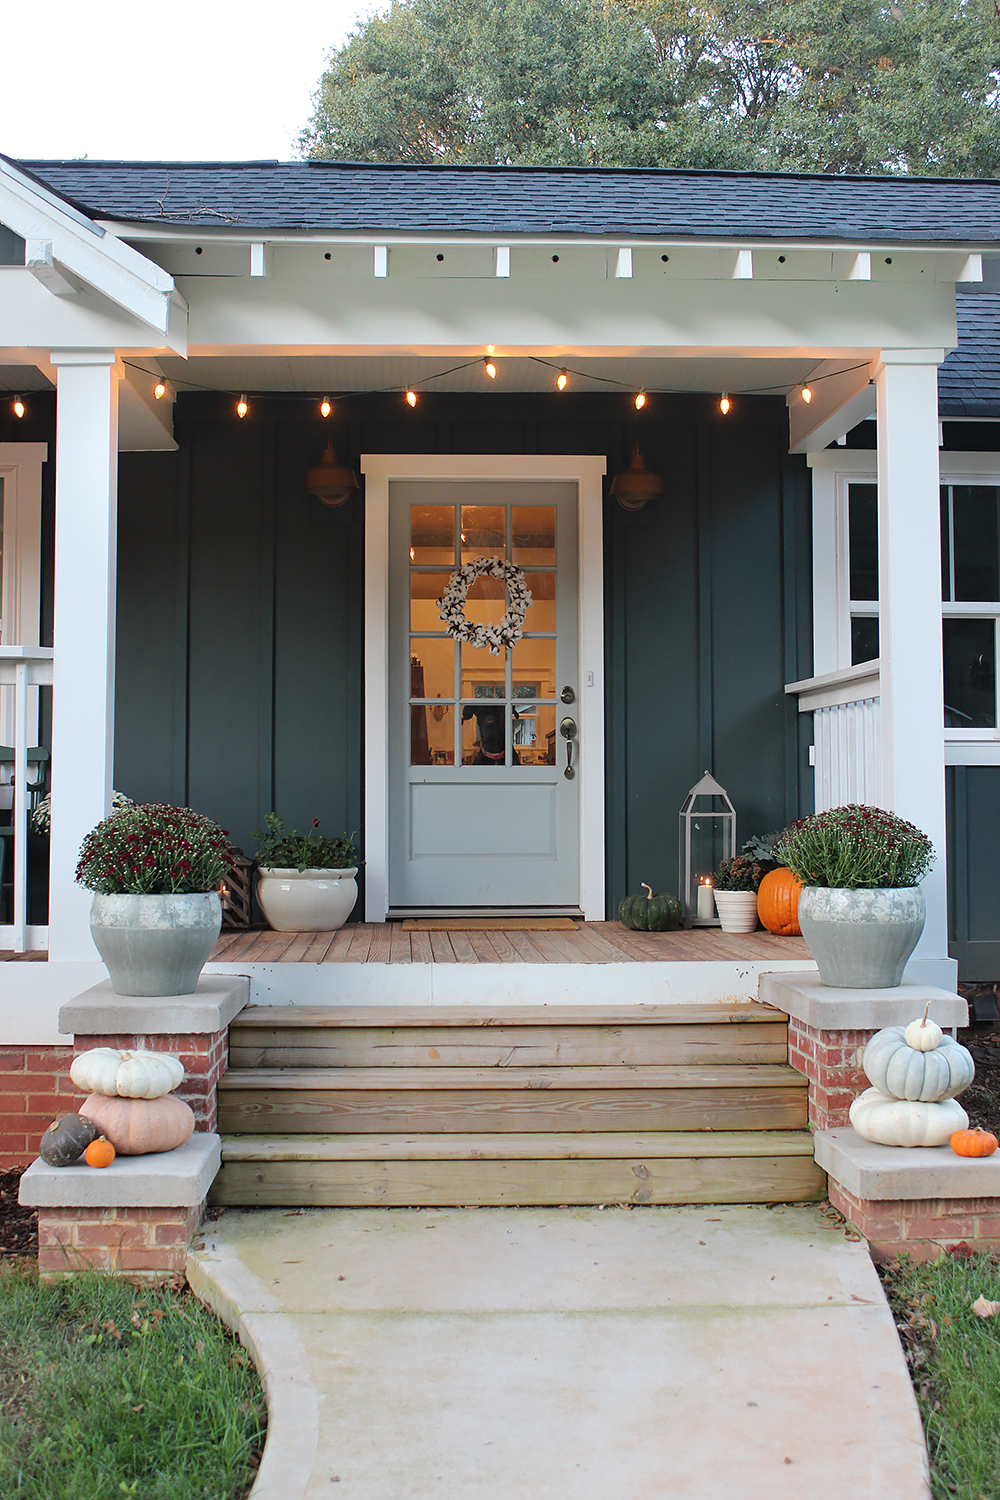 styling-your-porch-for-fall